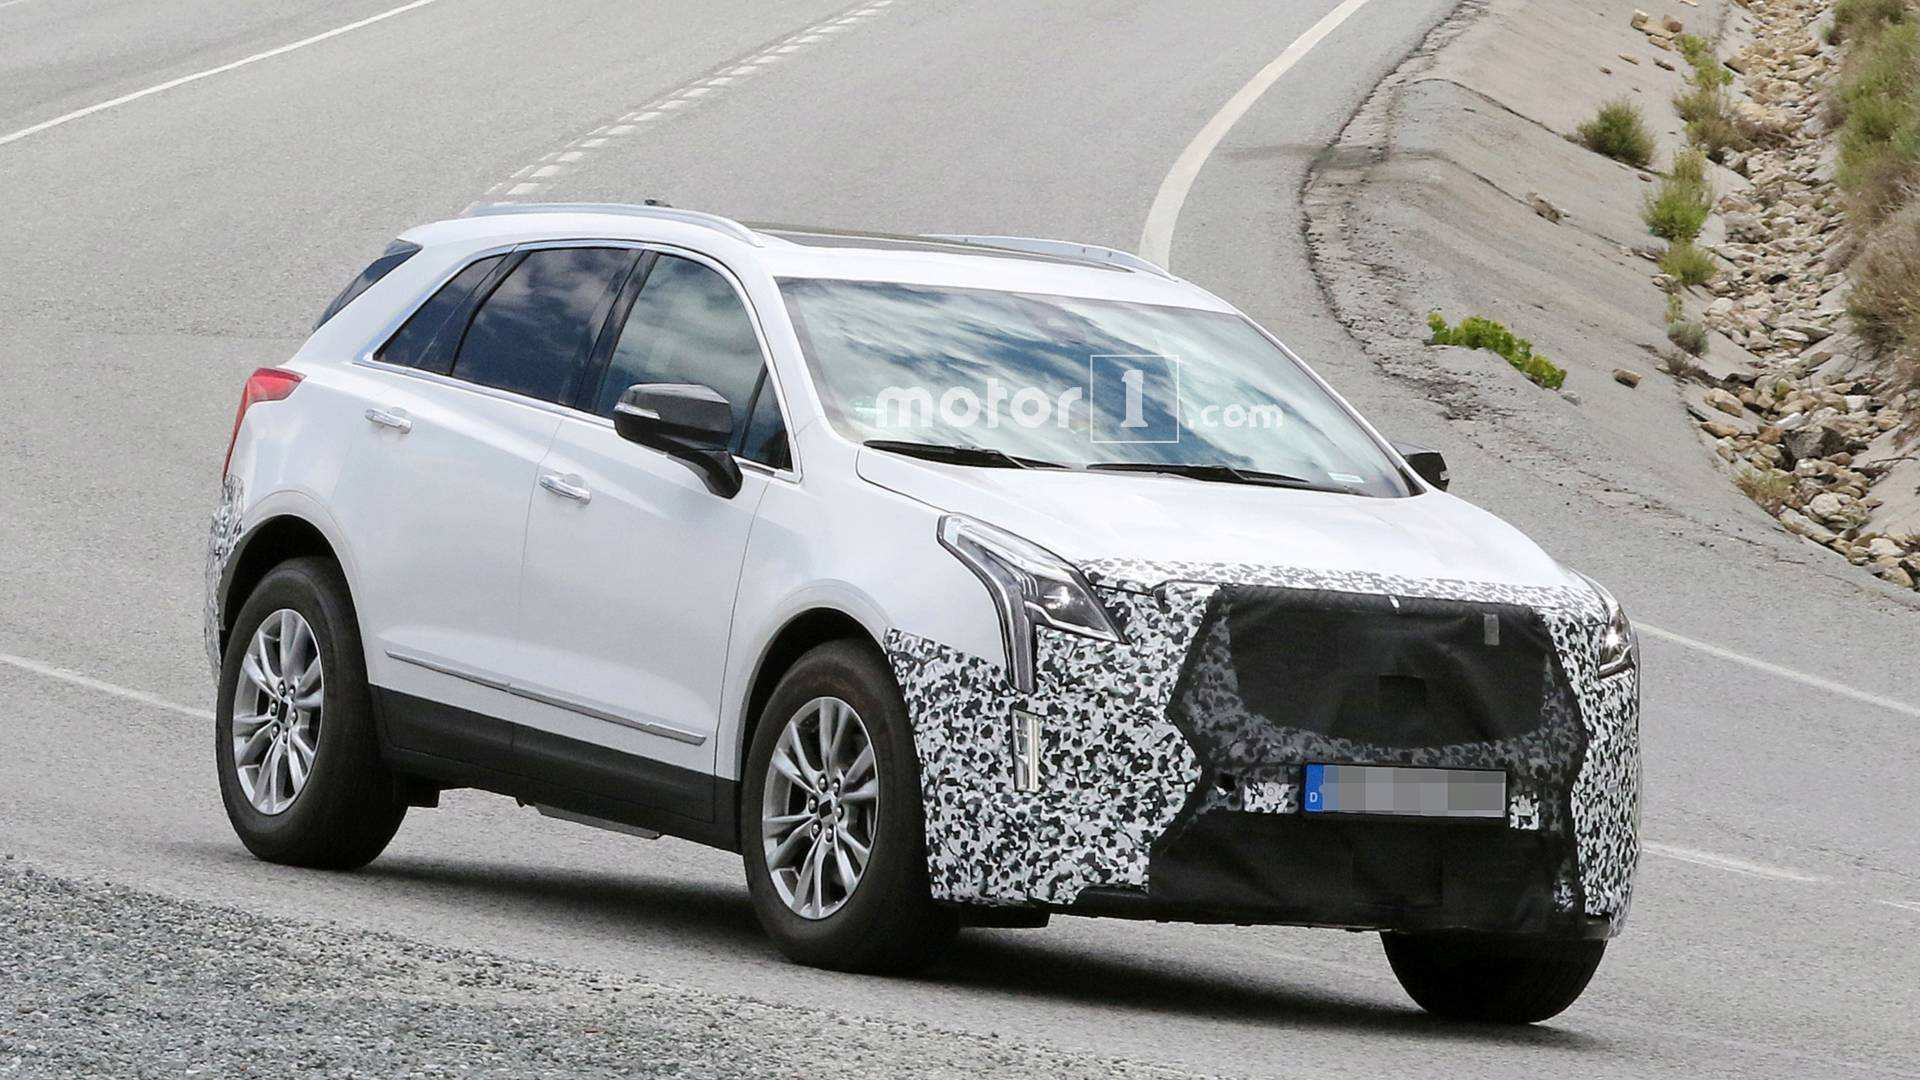 76 All New Spy Shots Cadillac Xt5 Price